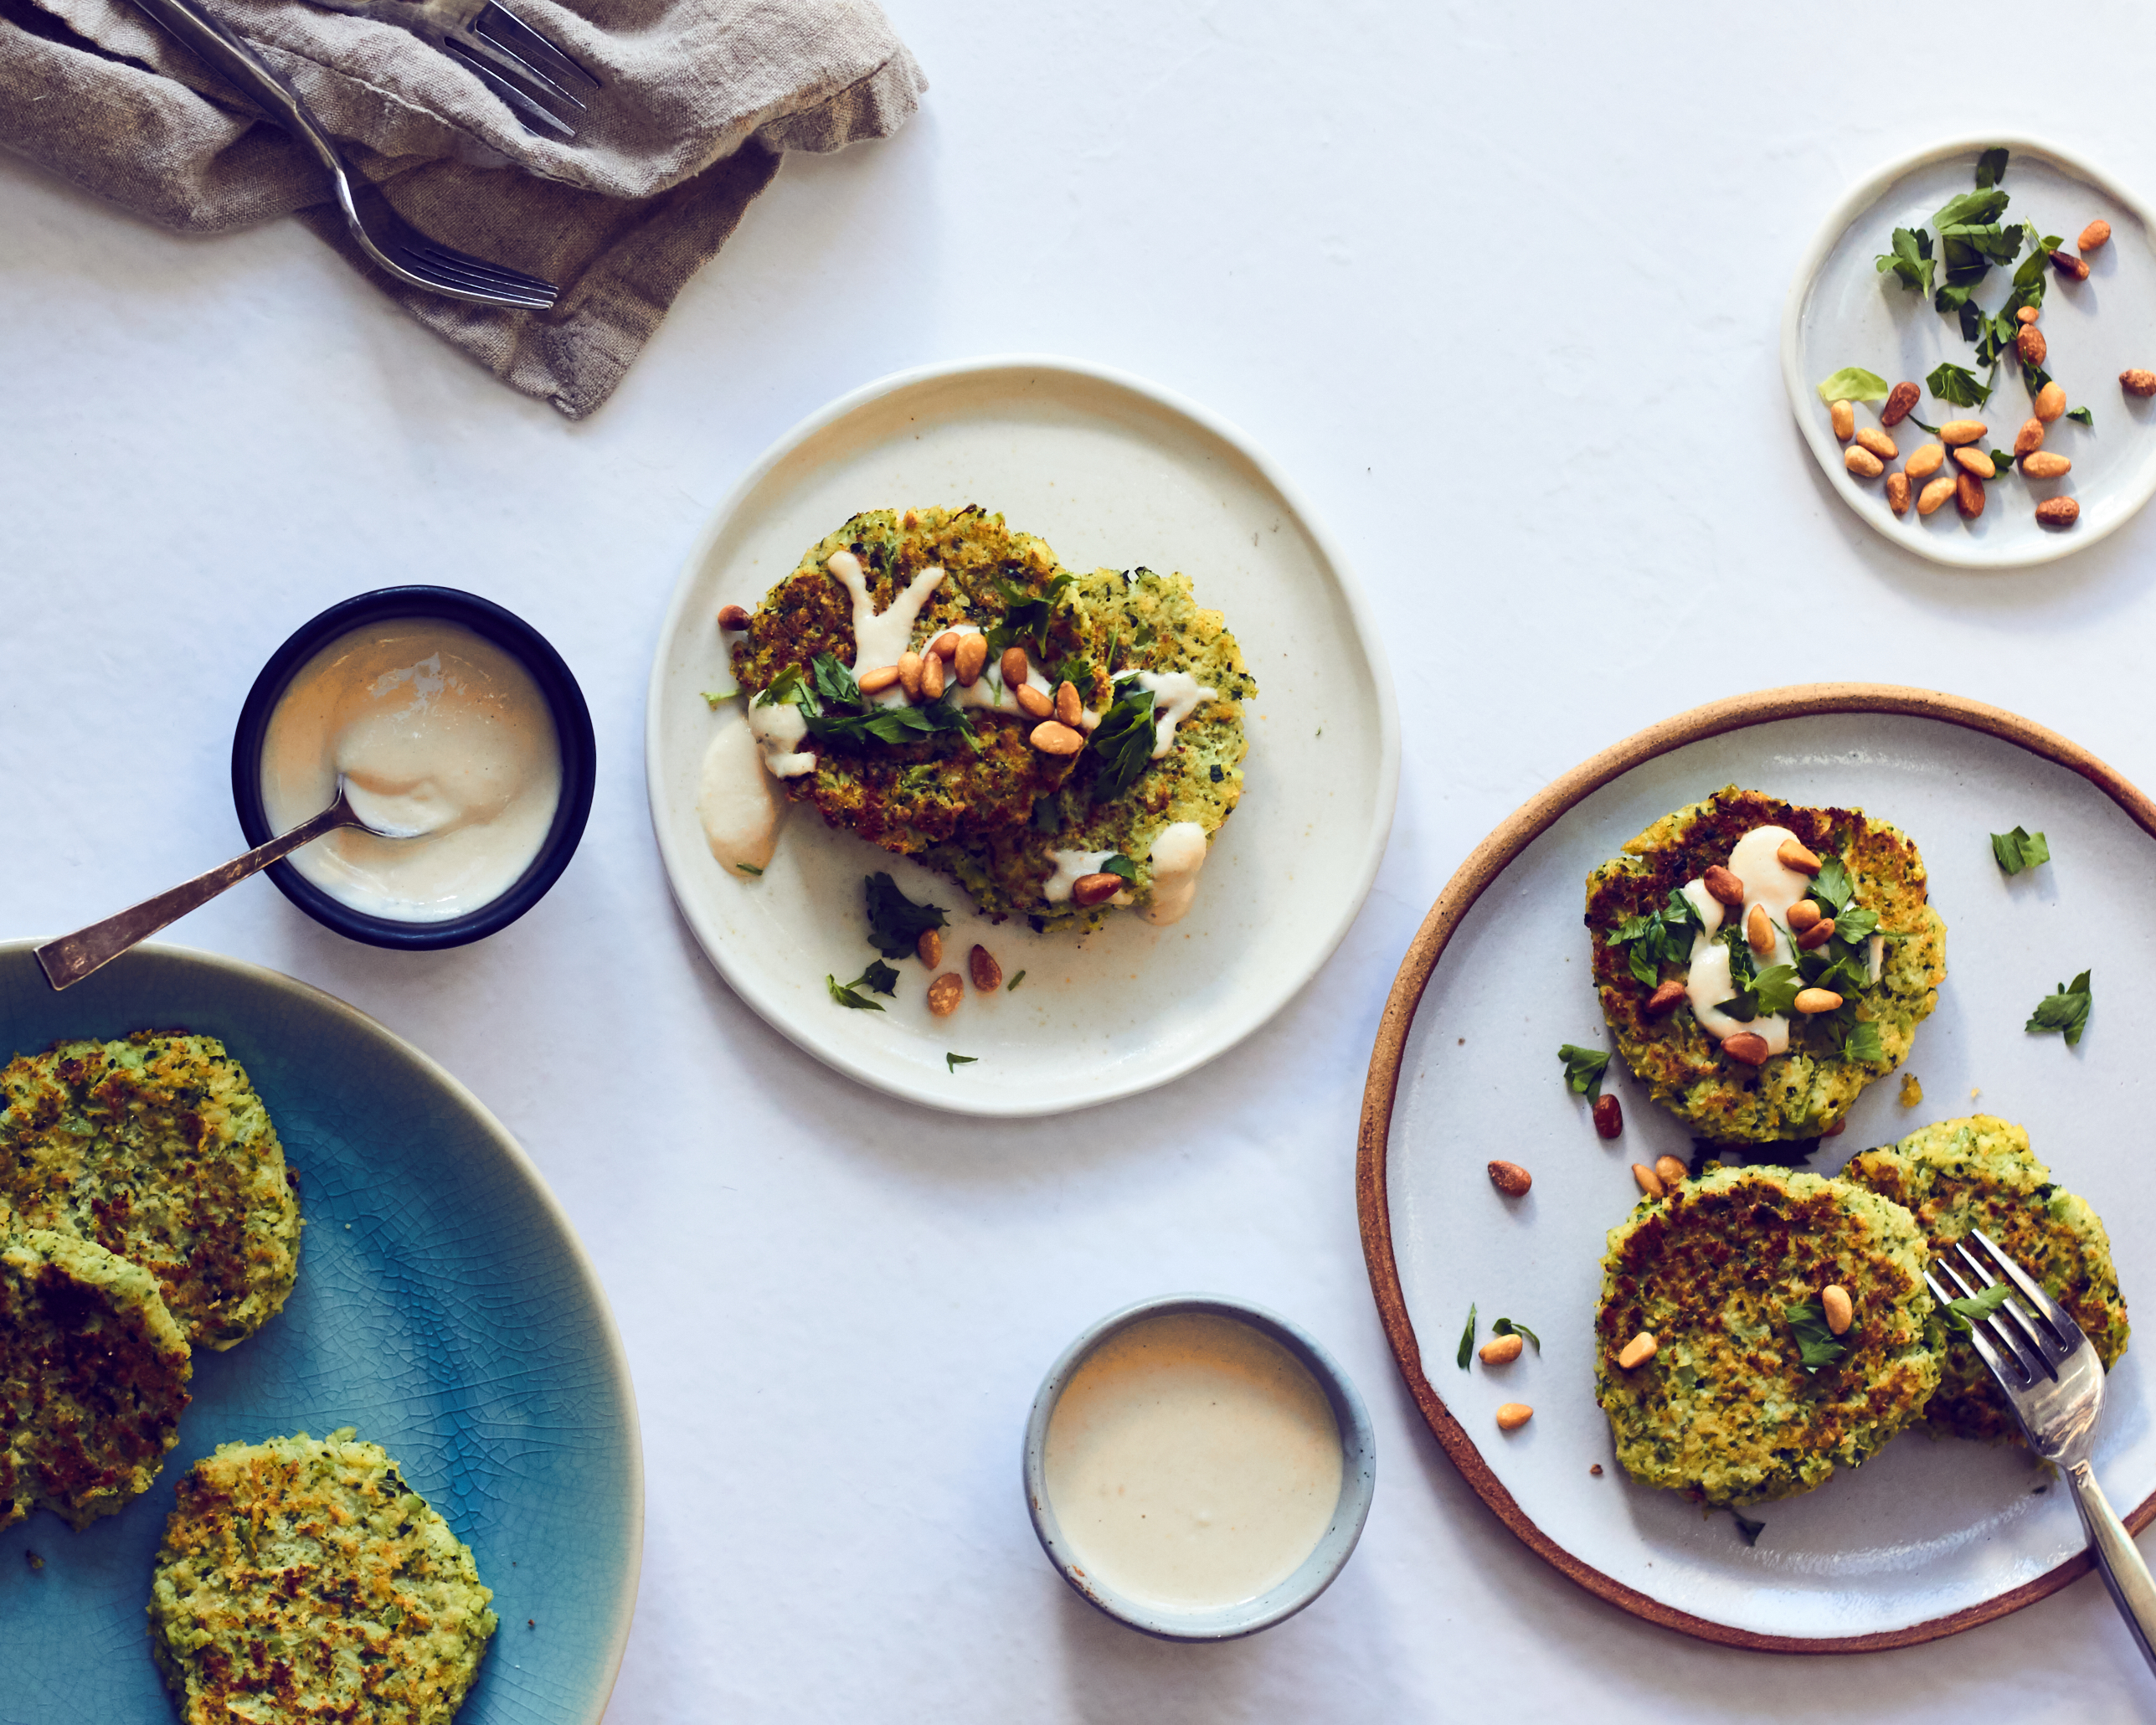 These broccoli fritters are gluten fee and grain free and paleo.